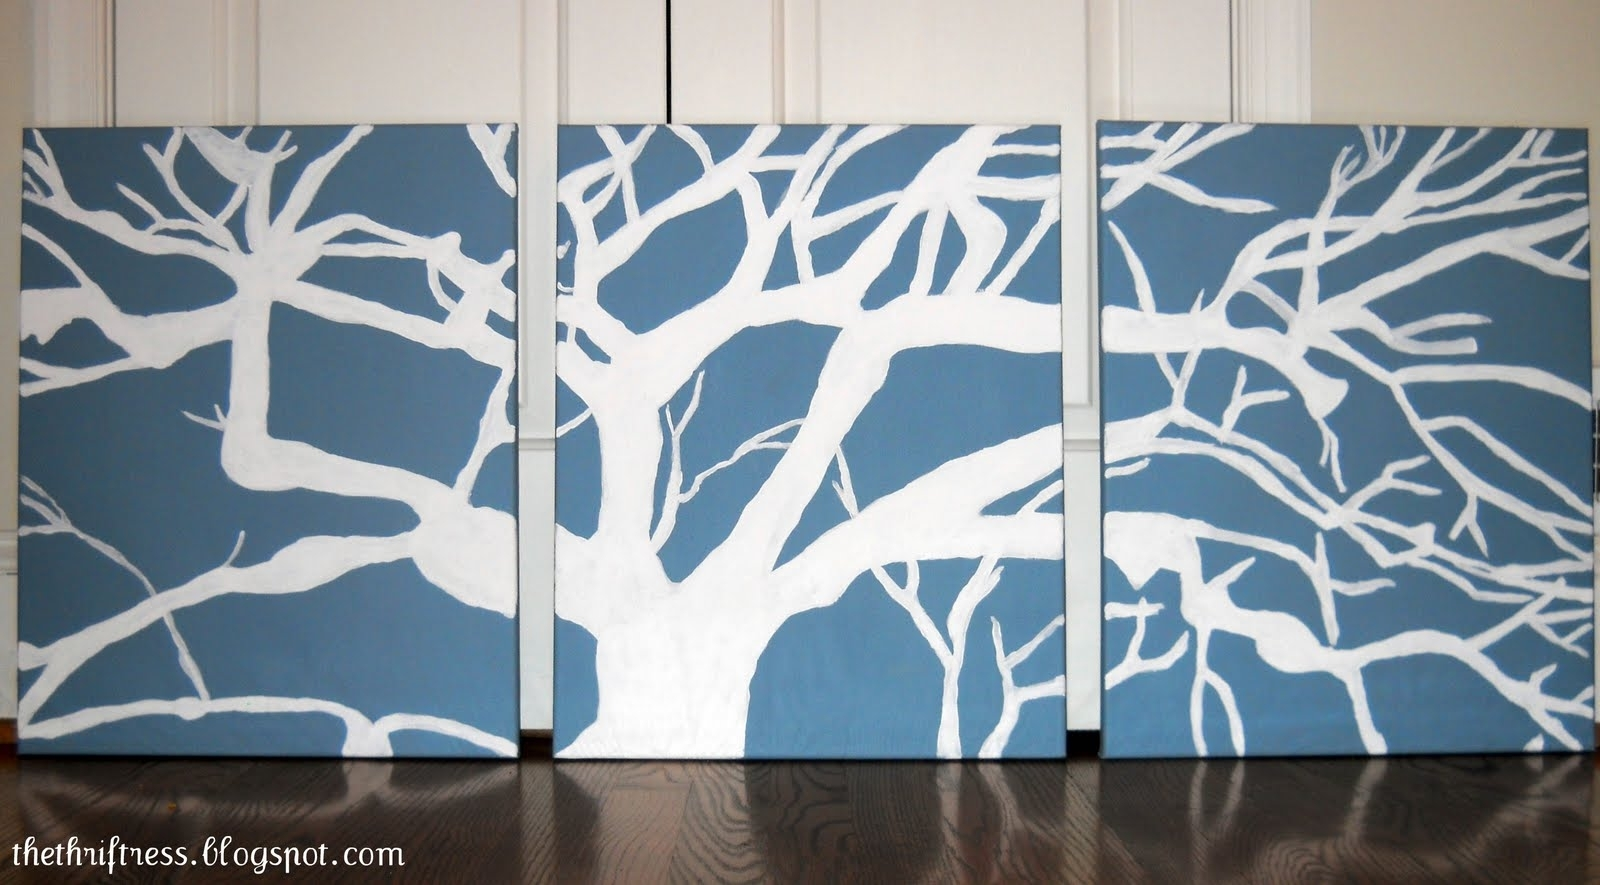 Diy Canvas Wall Art Ideas Stencils Paint – Tierra Este | #28929 Inside Most Up To Date Jcpenney Canvas Wall Art (View 6 of 15)